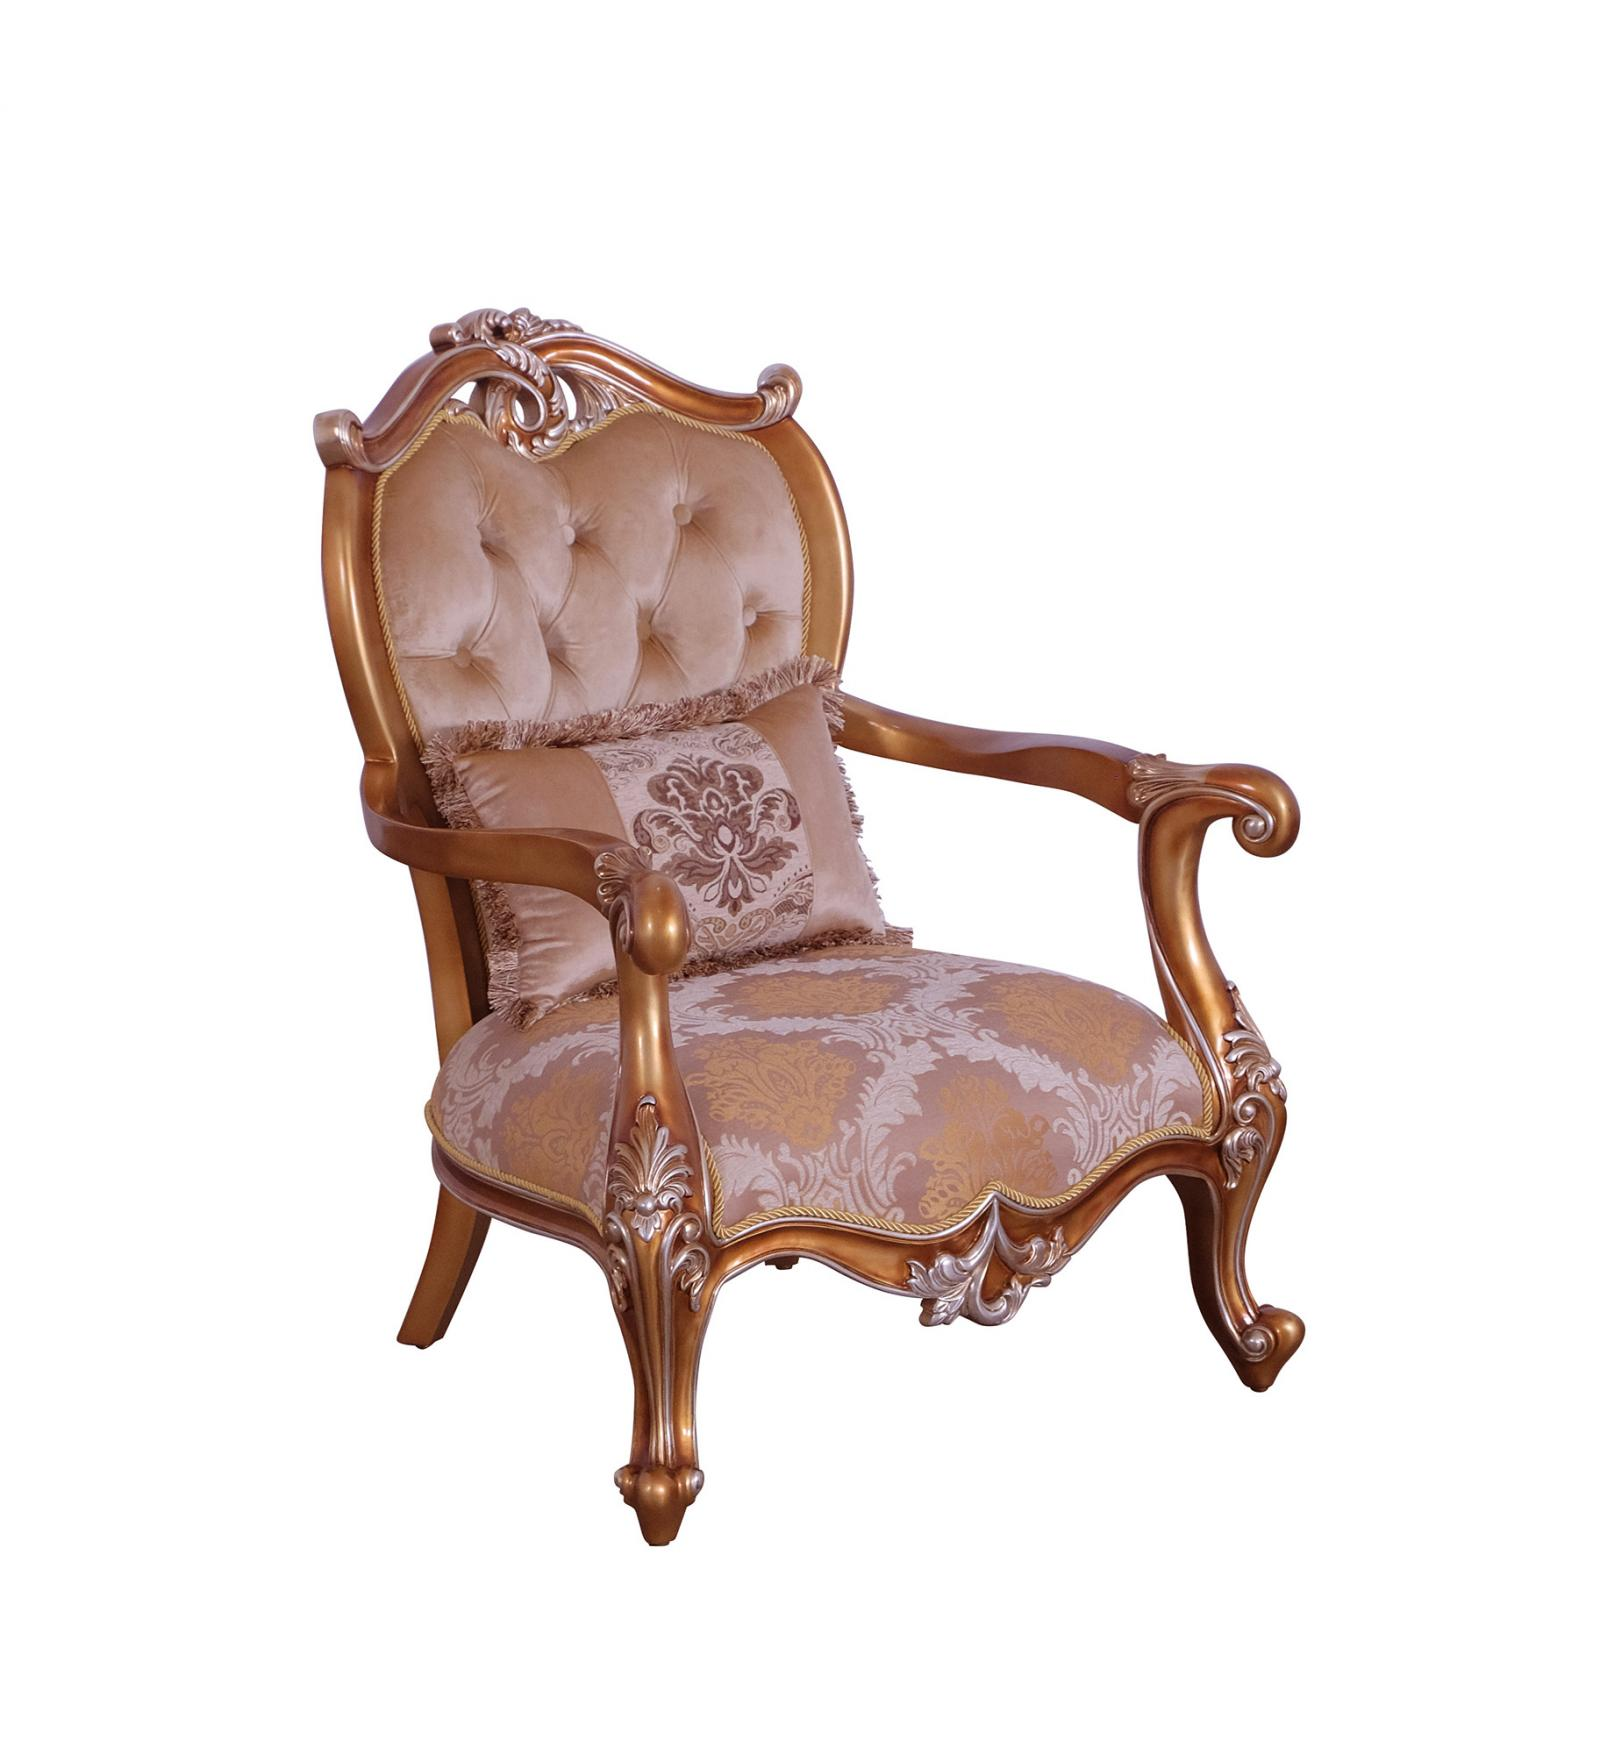 Classic  Traditional Gold  Sand Wood  Solid Hardwood and Fabric Arm Chair EUROPEAN FURNITURE 37057-C